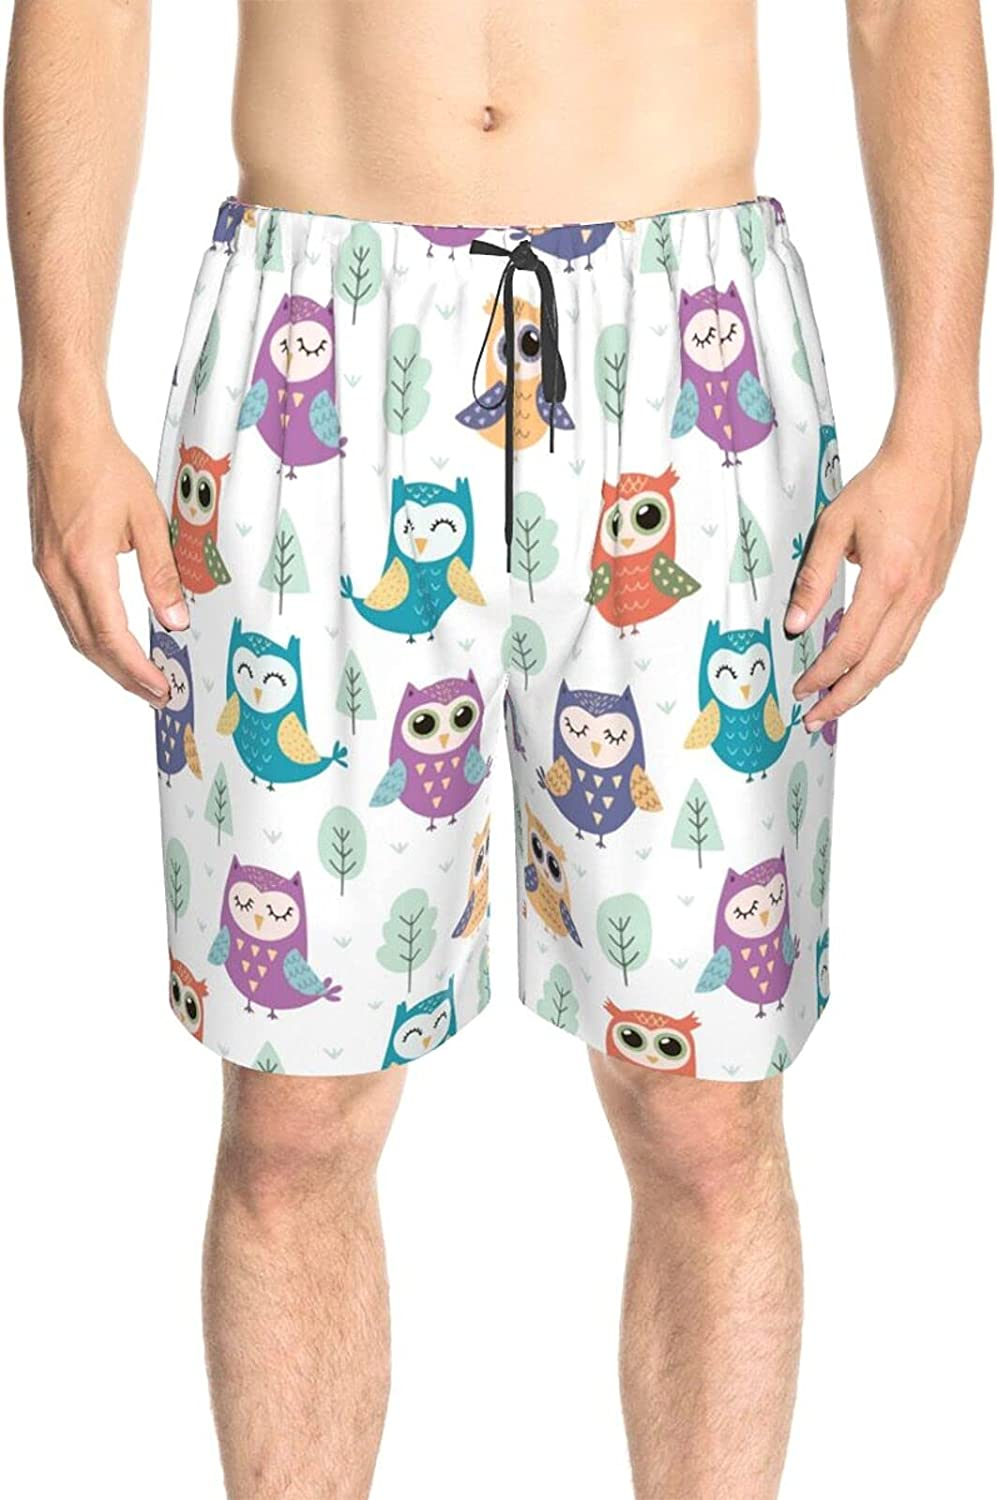 Men's Swim Shorts Cute Owls Funny On Forest Swim Short Boardshort Drawstring 3D Printed Surfing Board Shorts with Pockets